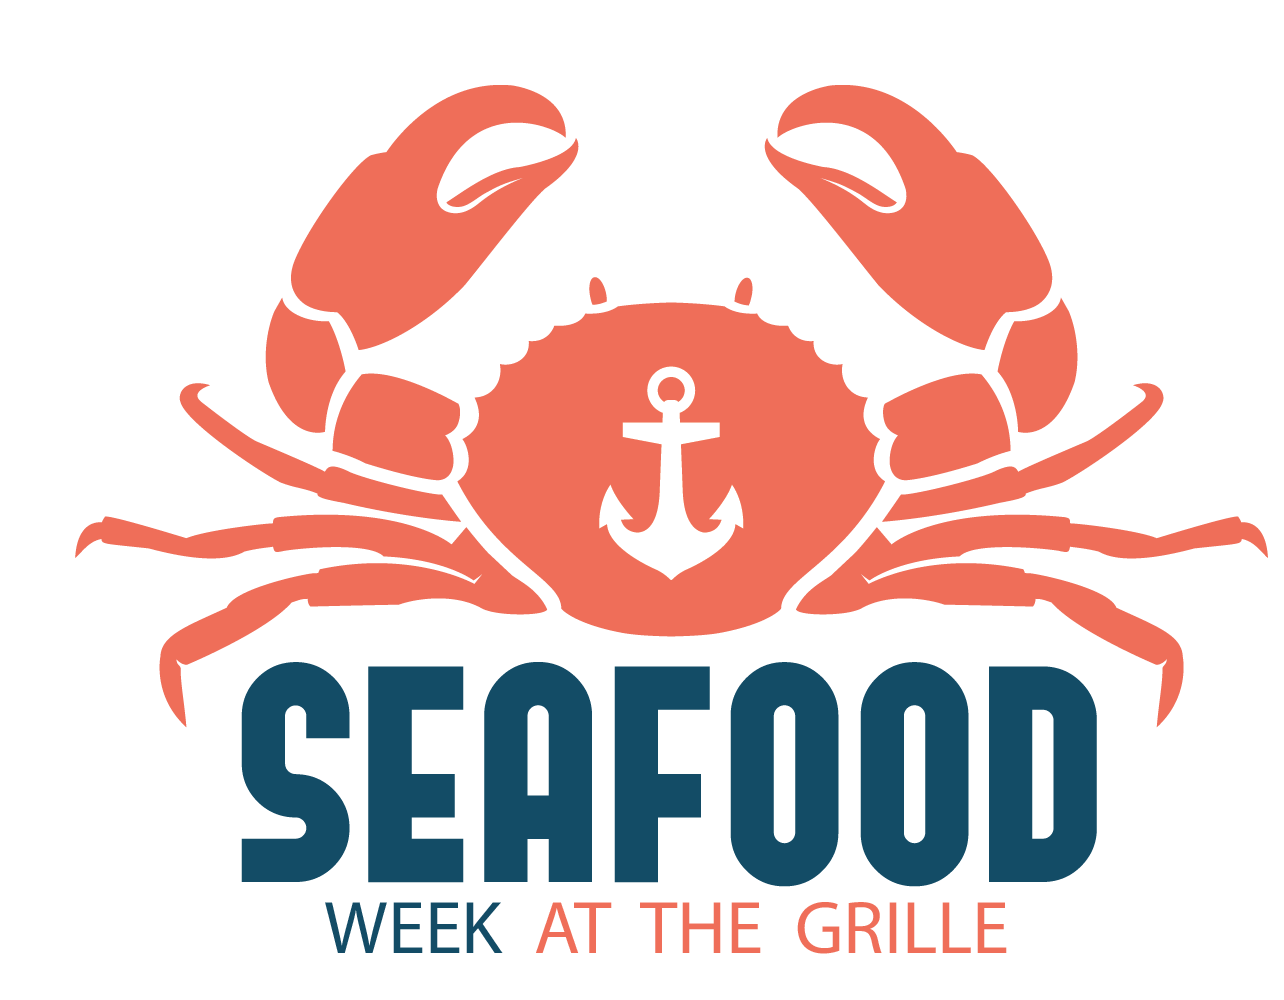 seafood week logo